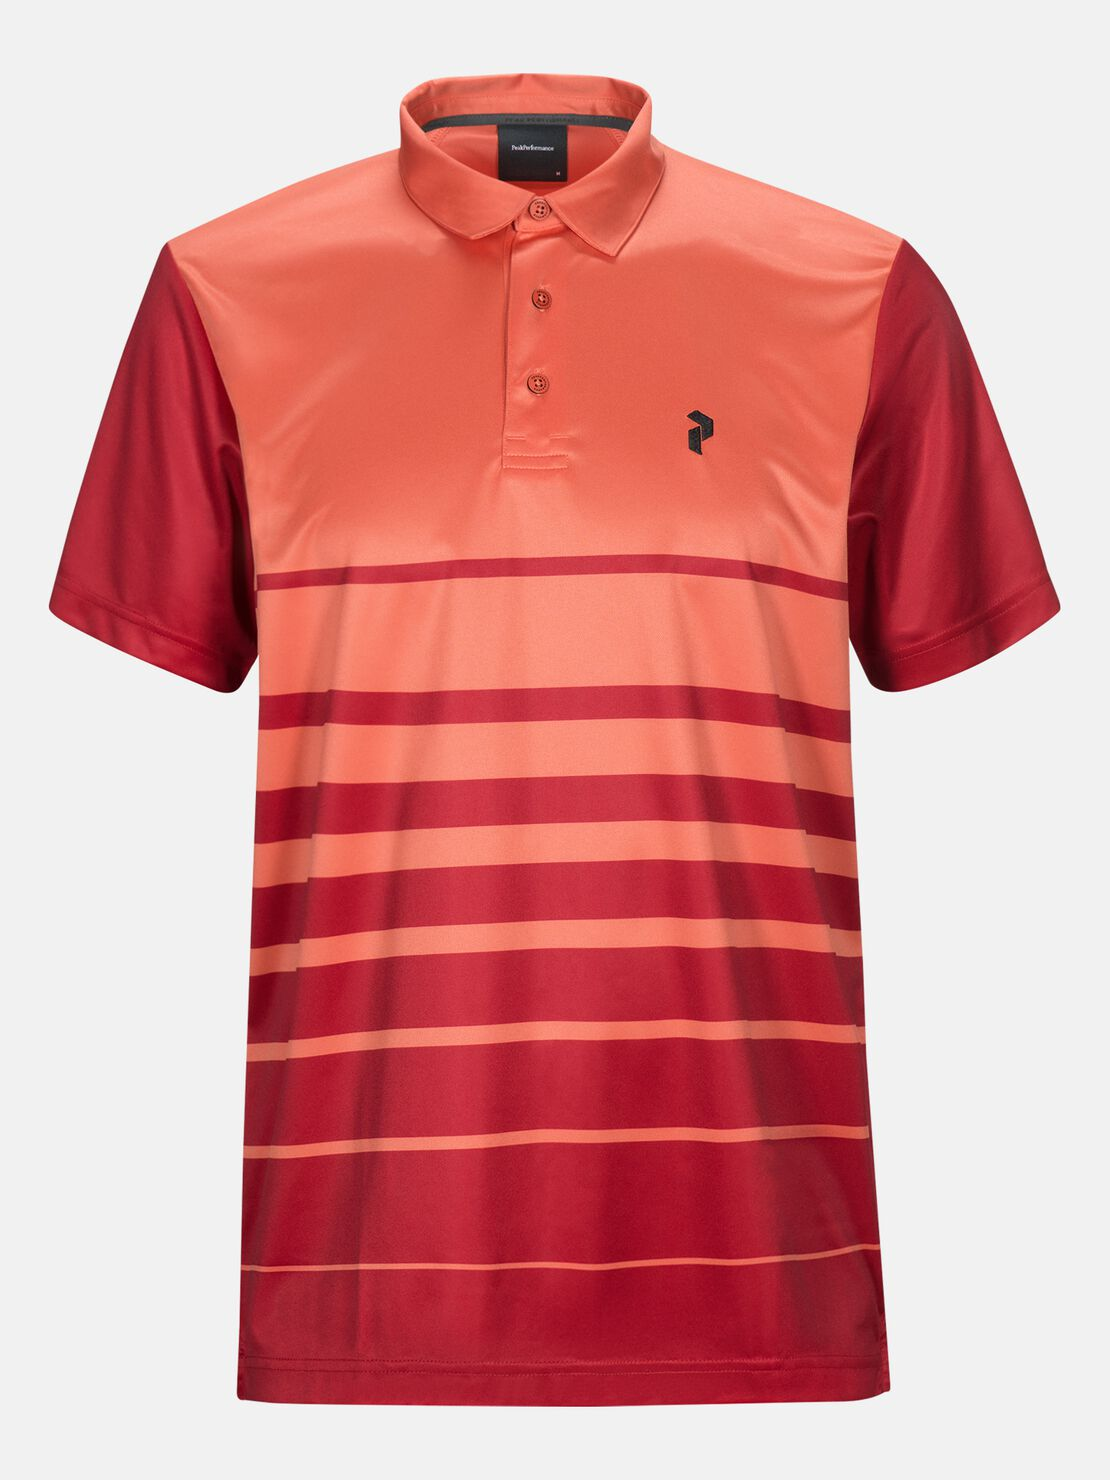 Peak Performance Golf Bandon Print Polo Clay Red